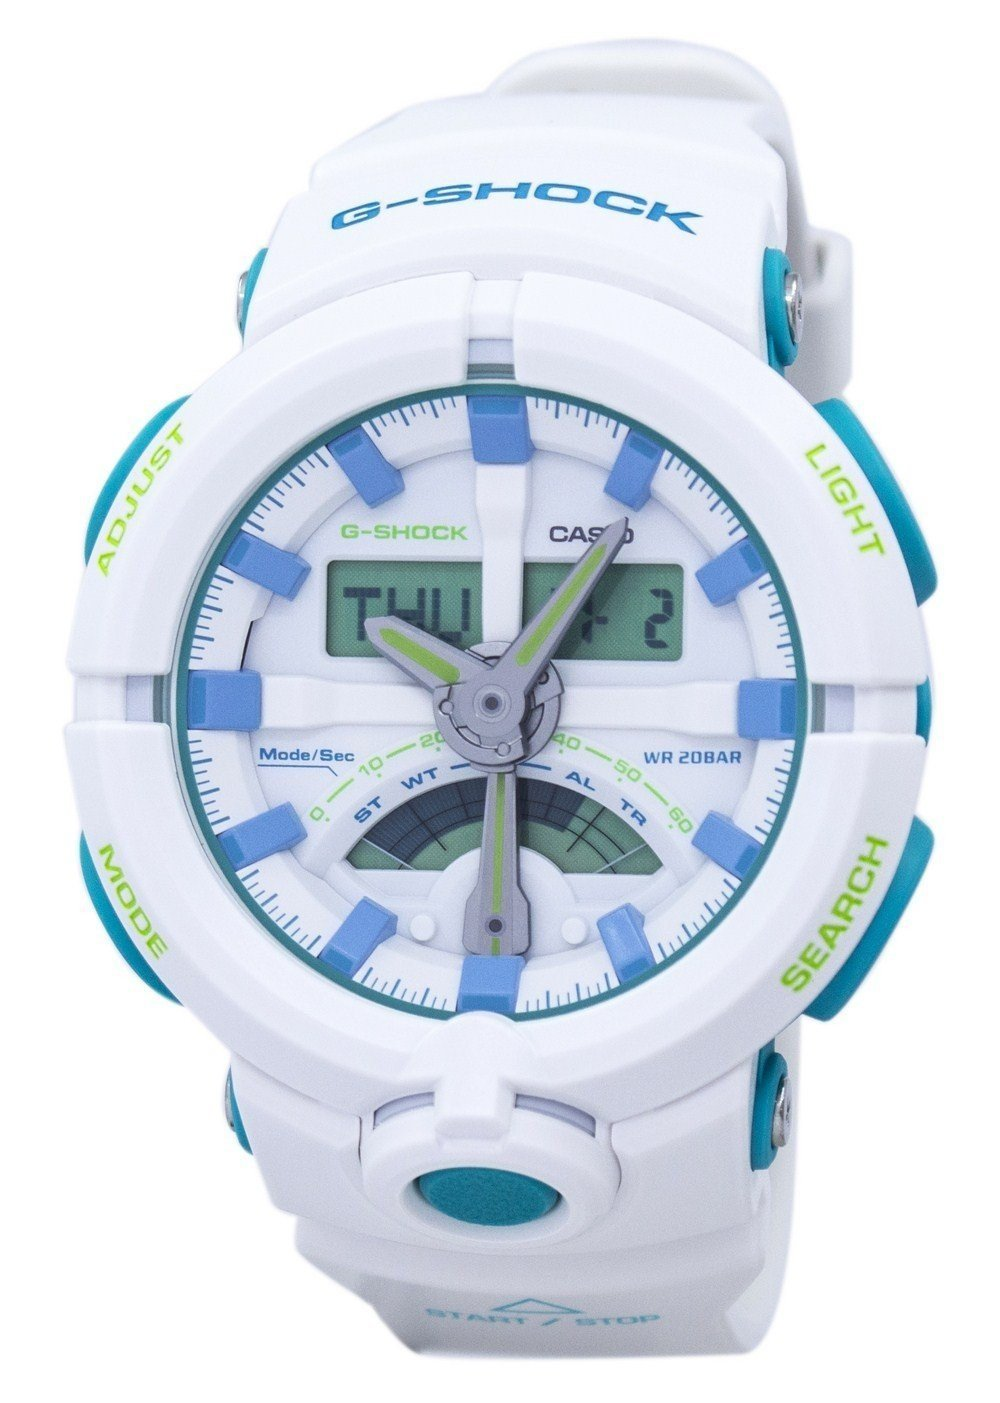 Casio G-Shock Shock Resistant Alarm Analog Digital GA-500WG-7A GA500WG-7A Men's Watch